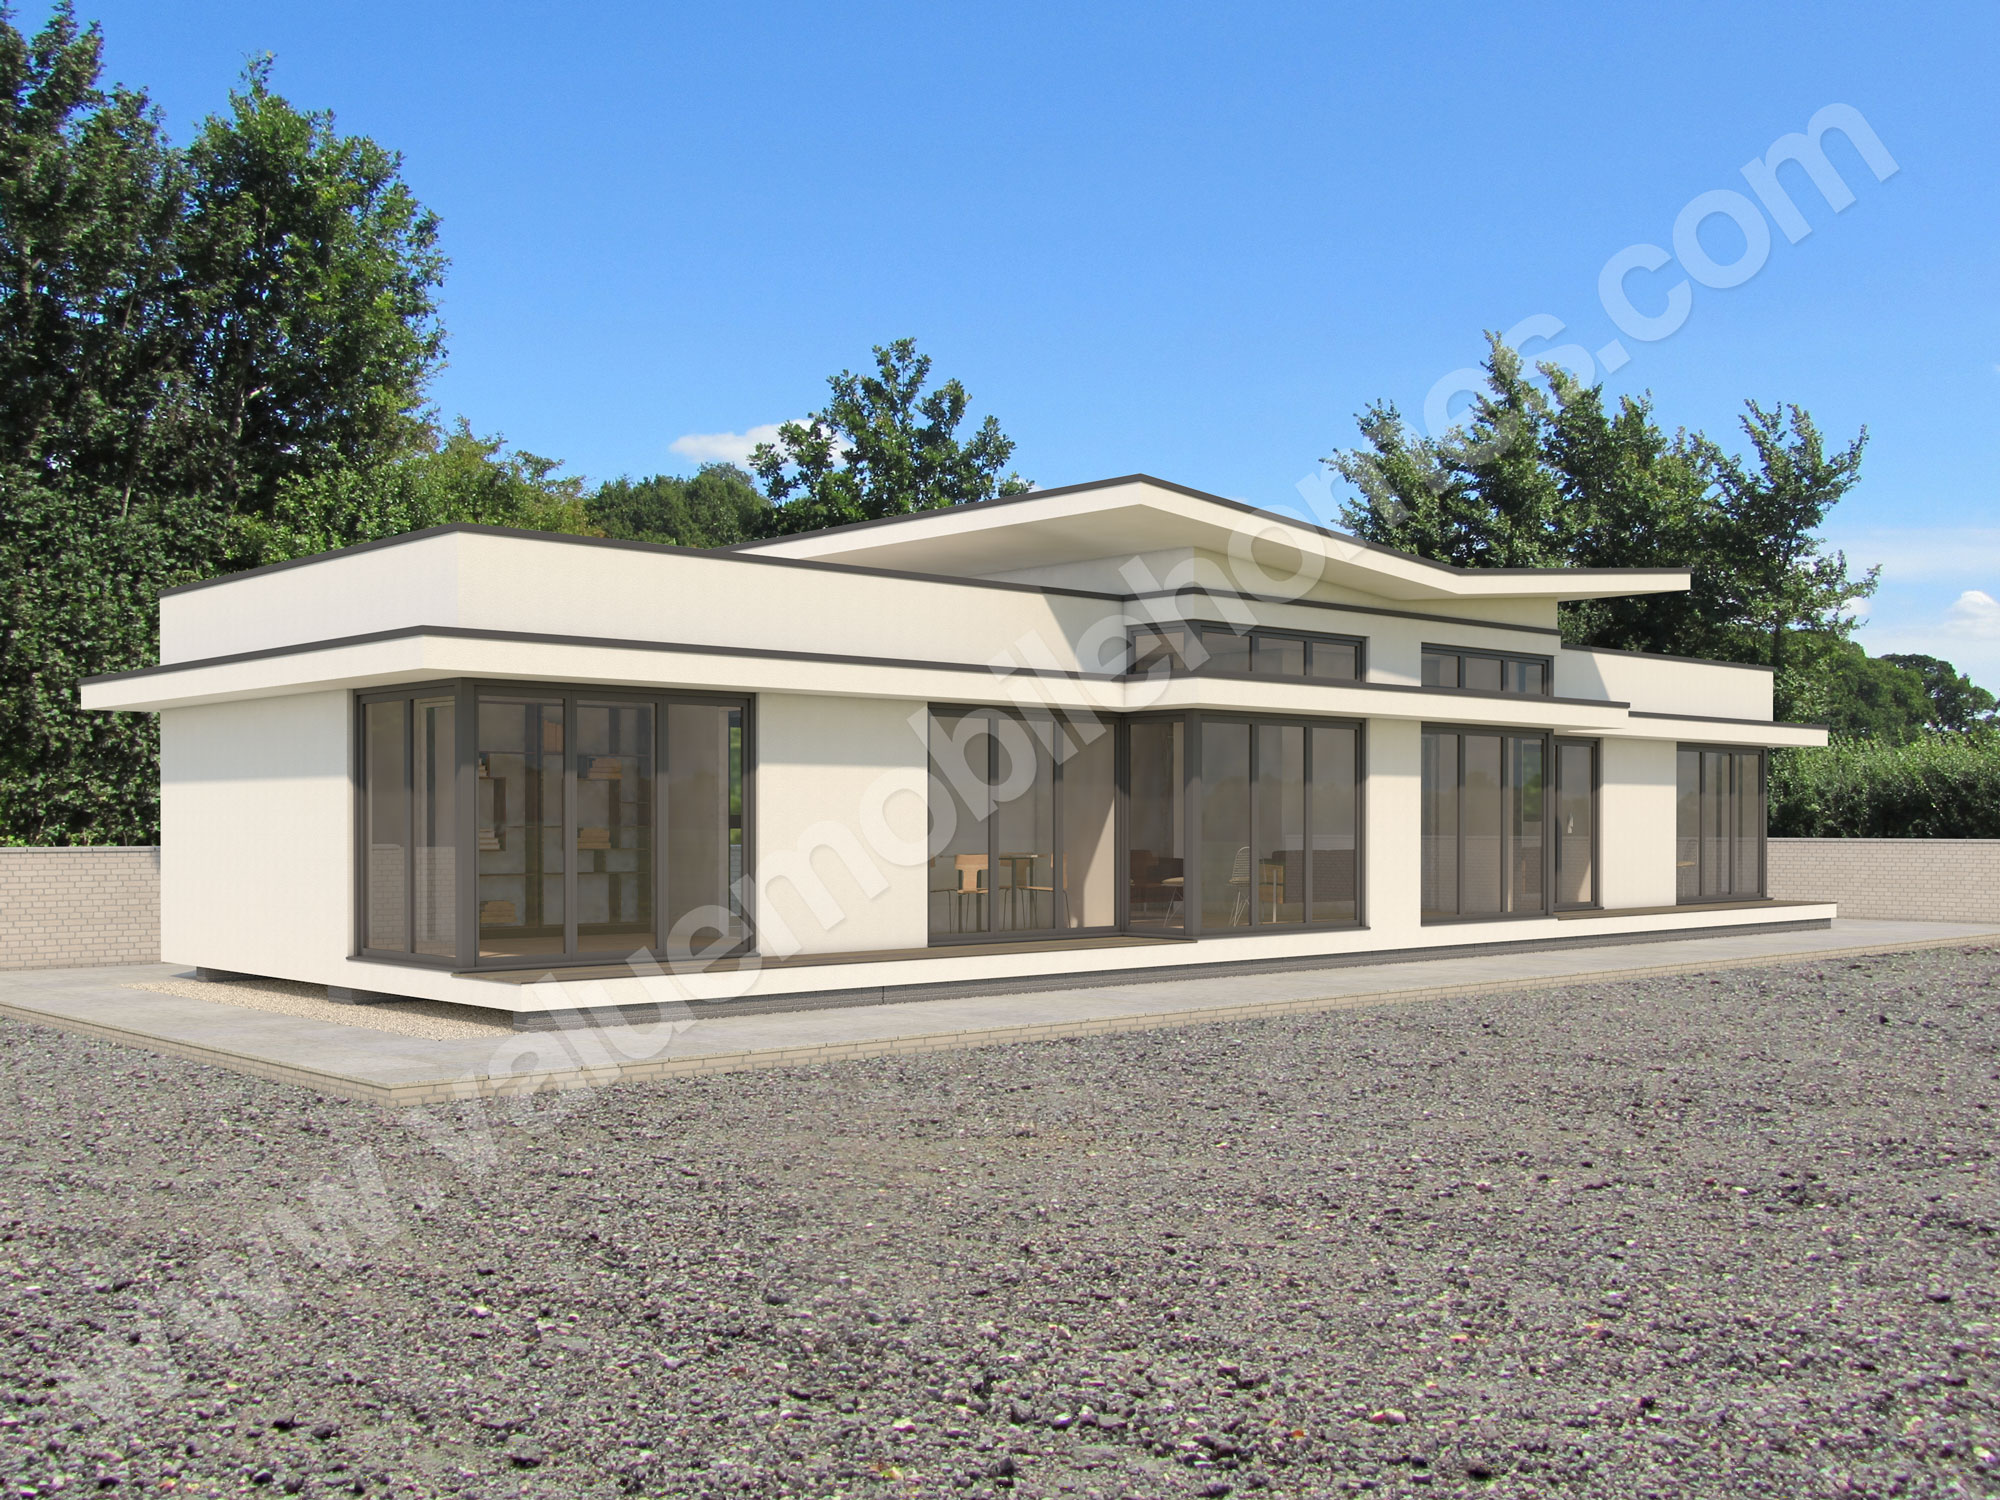 Butterfly1 twin unit mobile homes planning permission home plans,Planning Permission Mobile Home